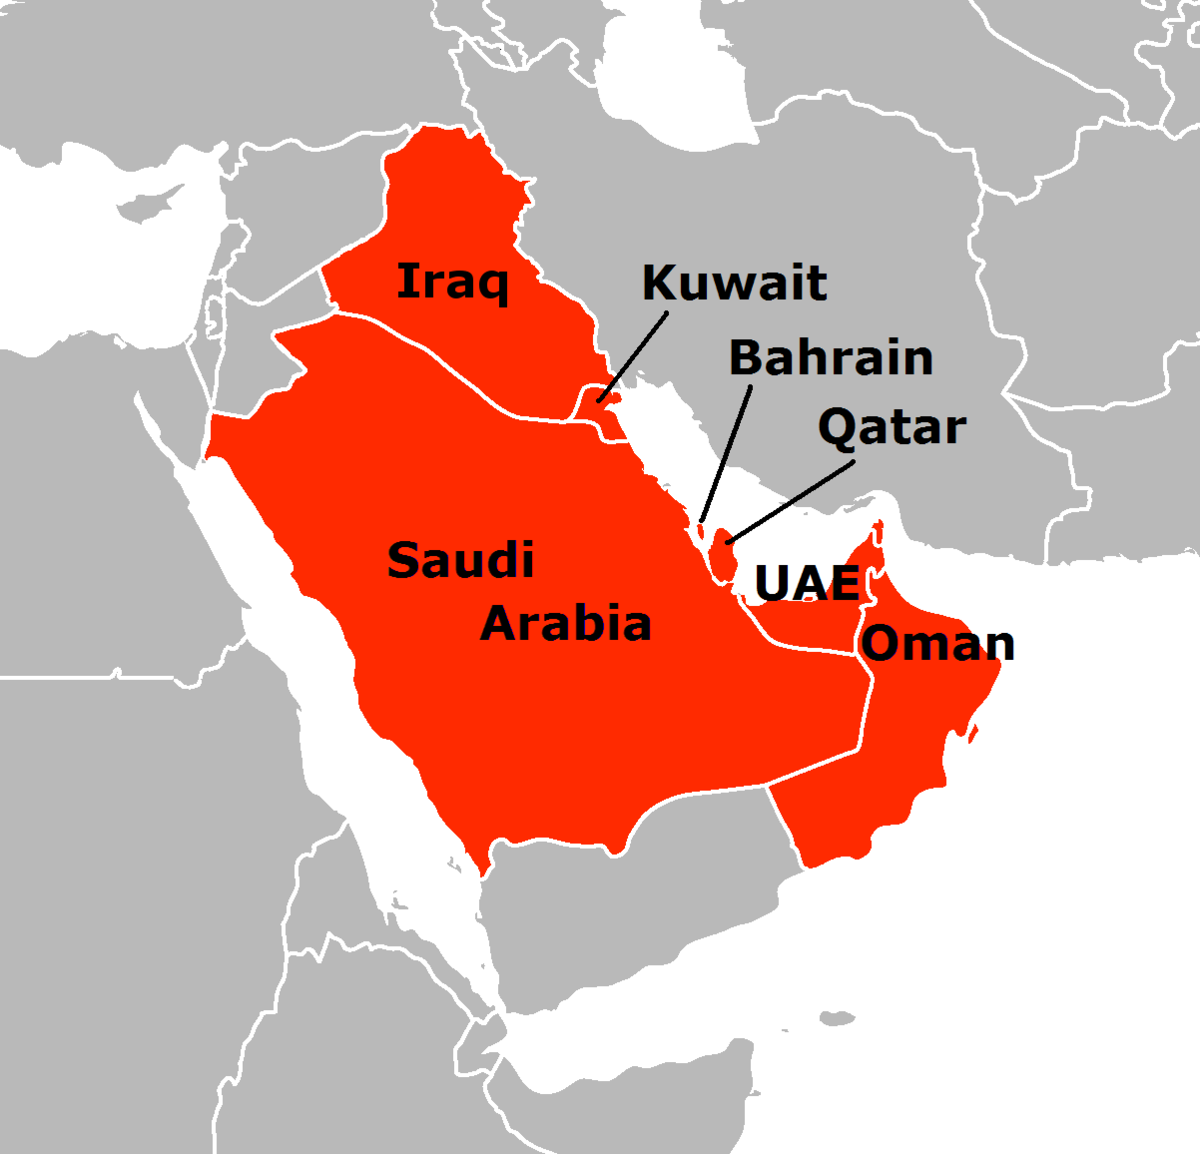 Arab states of the Persian Gulf - Wikipedia on